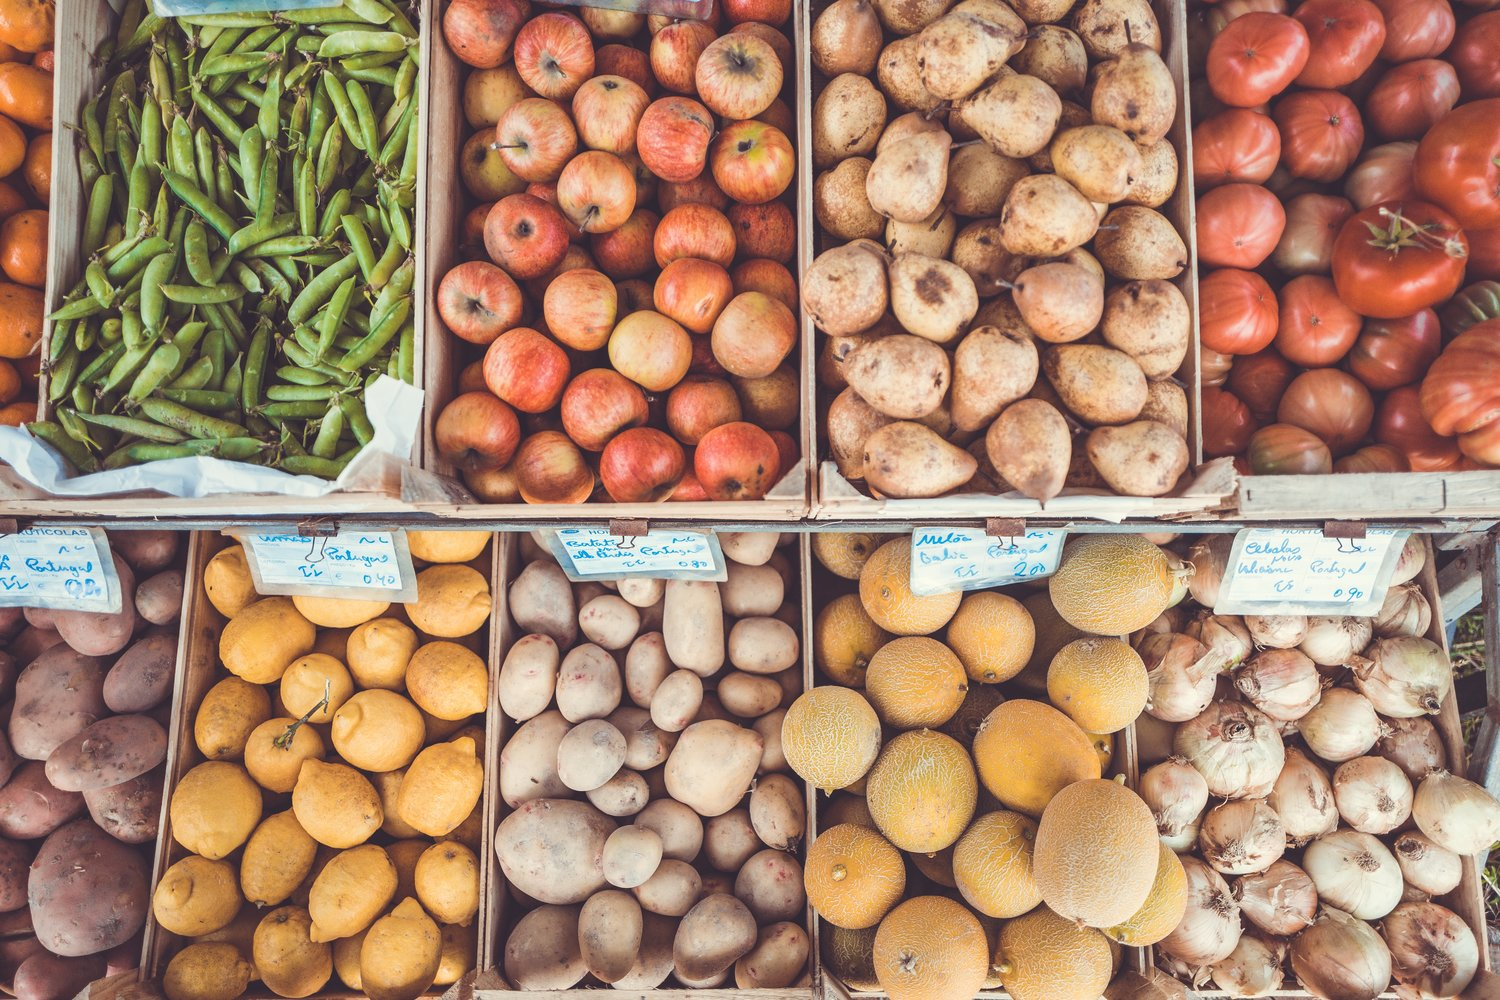 fruit and vegetables markets in France